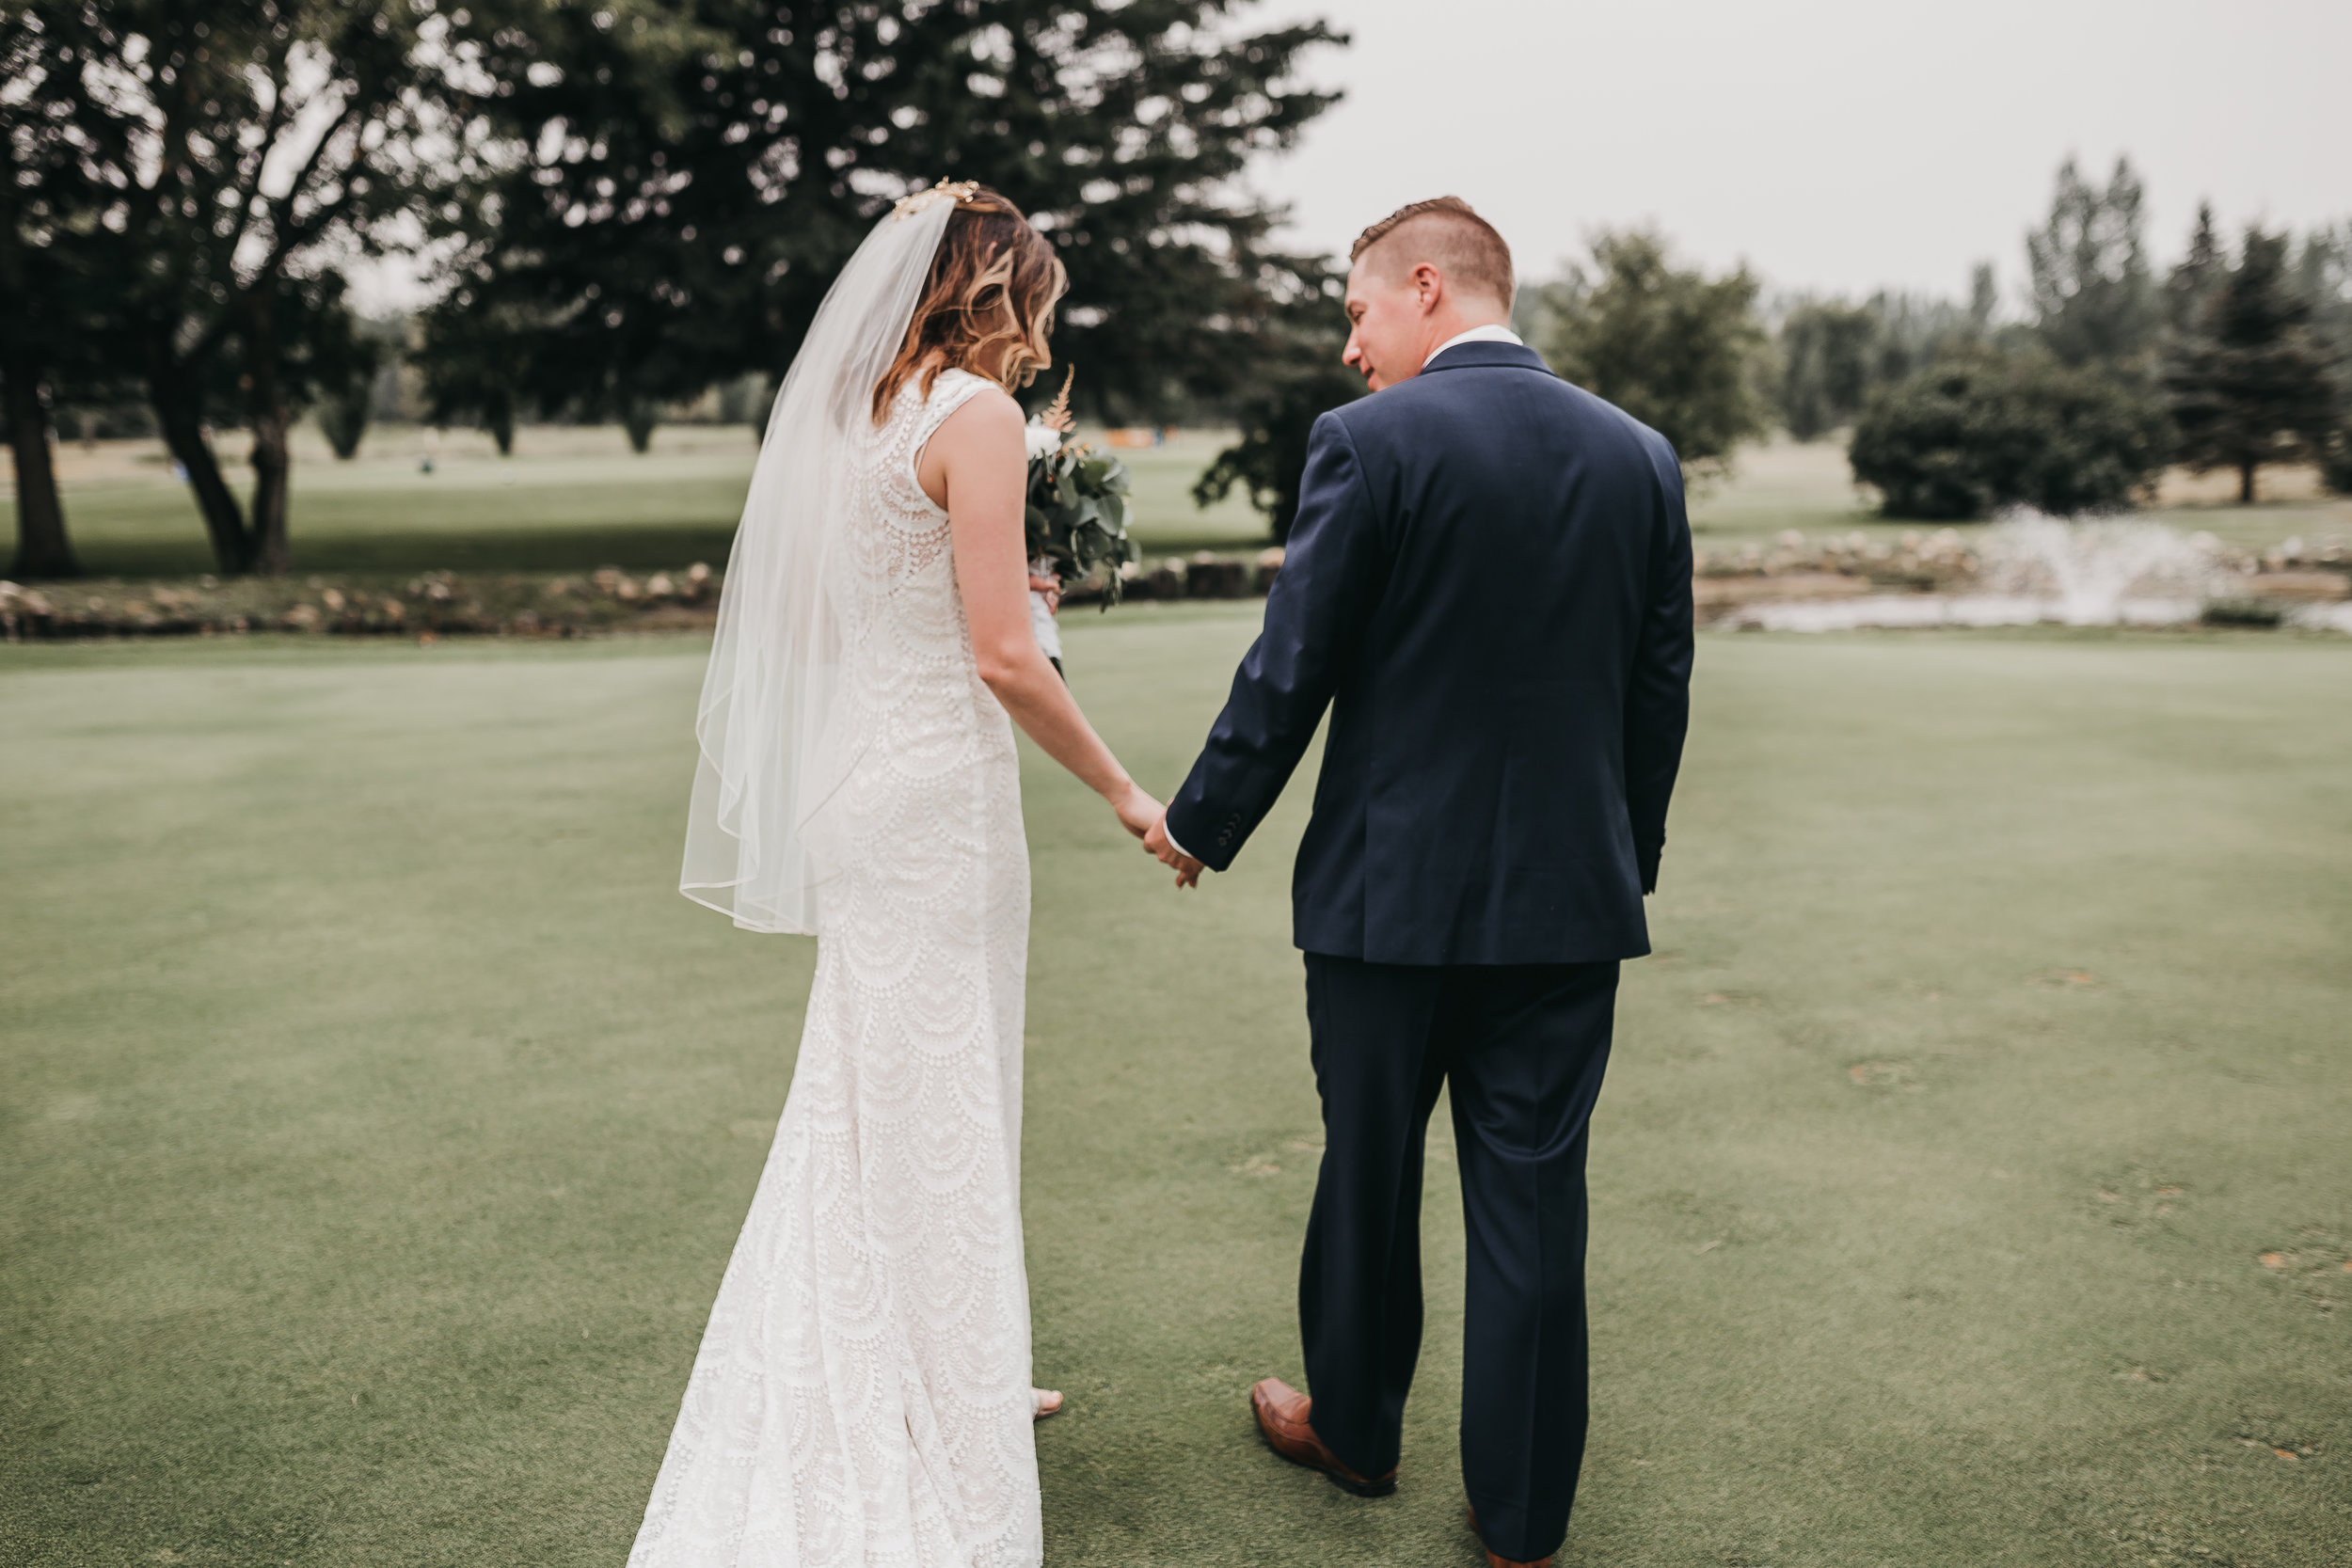 SimplePerfectionsPhotography.Mike+Courtney-92.jpg